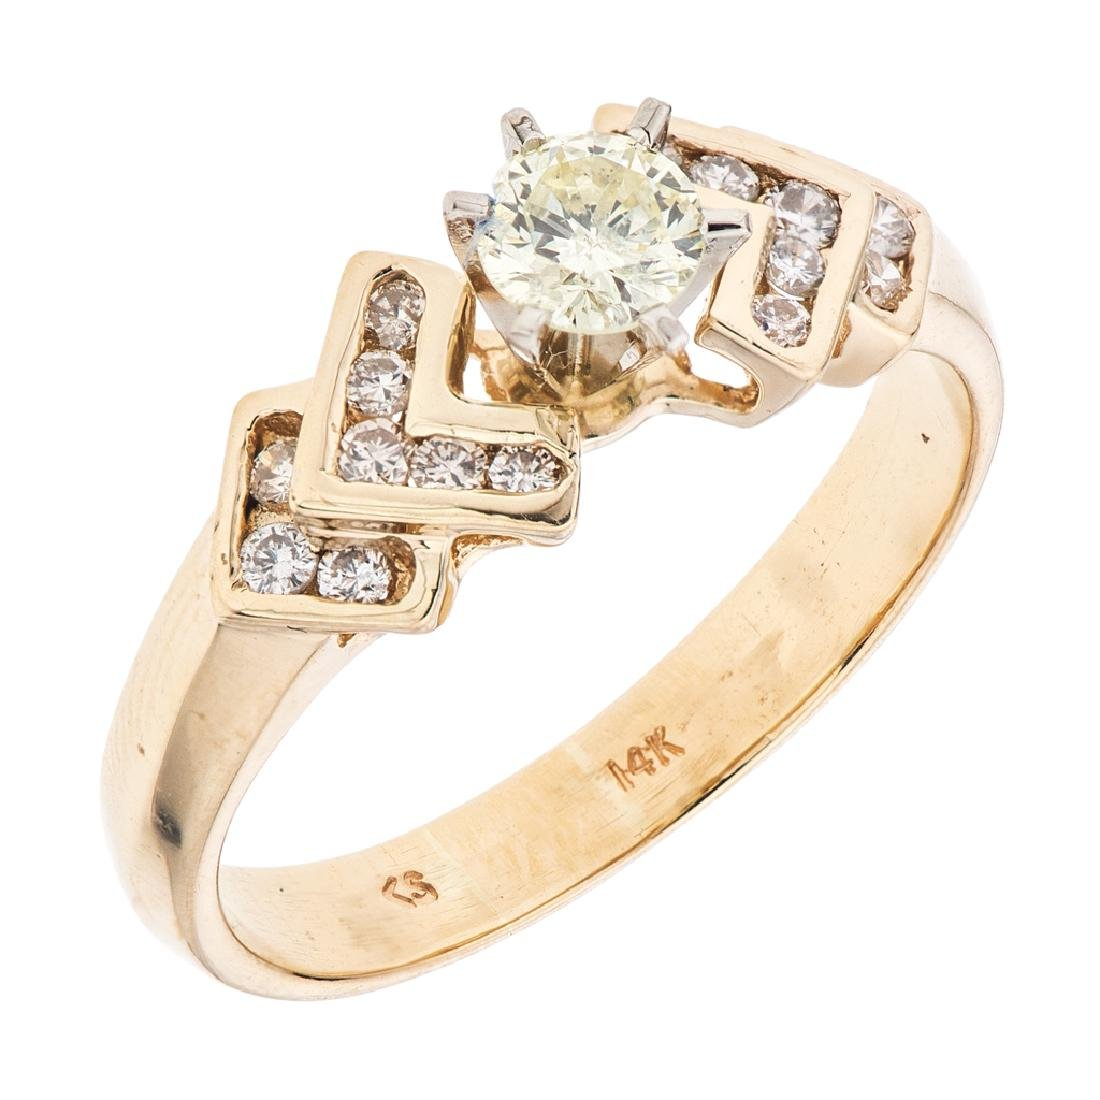 A 14K yellow gold ring with 17 brilliant cut diamonds